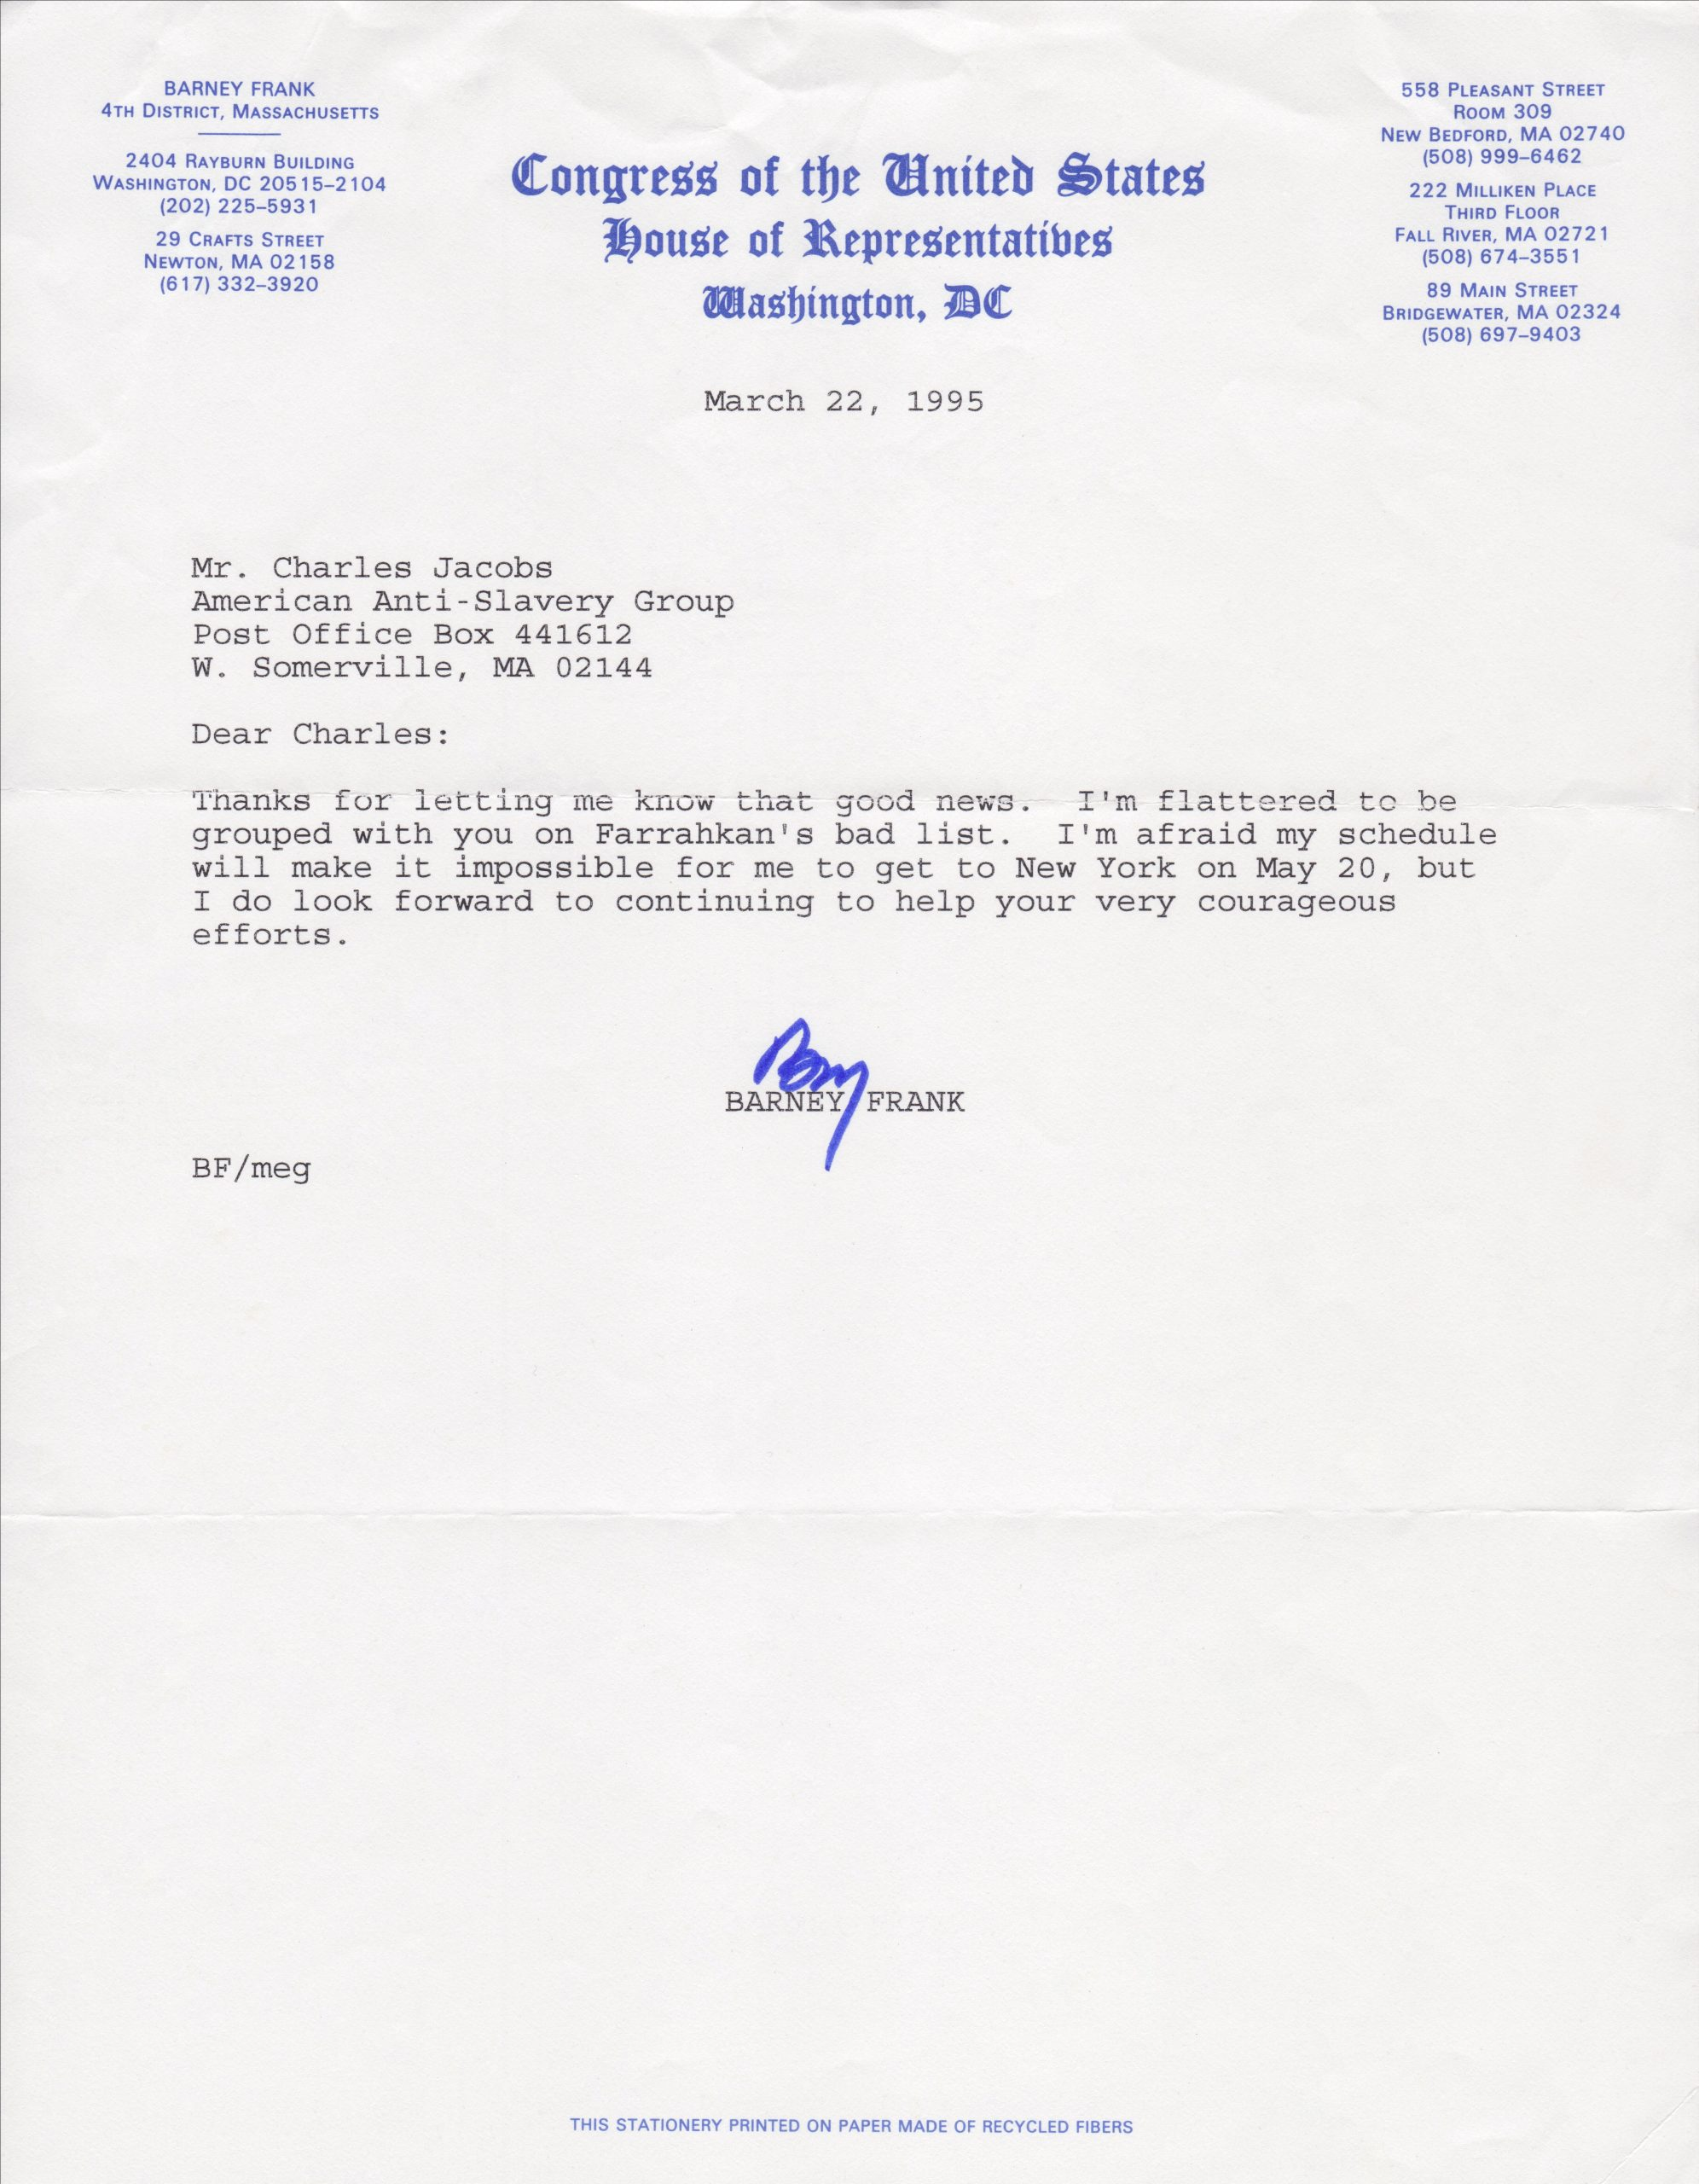 Letter to Dr. Charles Jacobs from Representative Barney Frank (March 22, 1995)